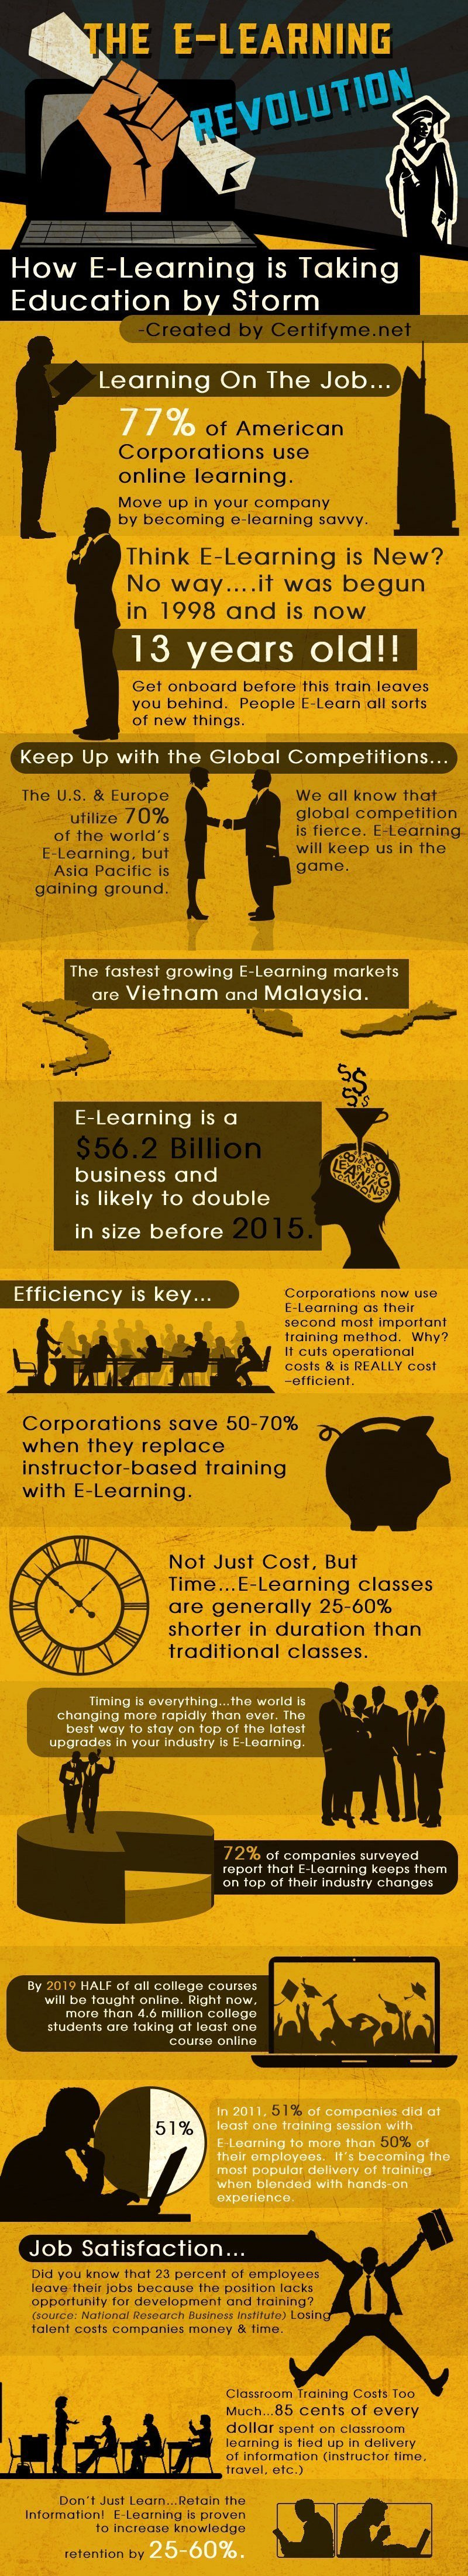 eLearning Statistics for 2013